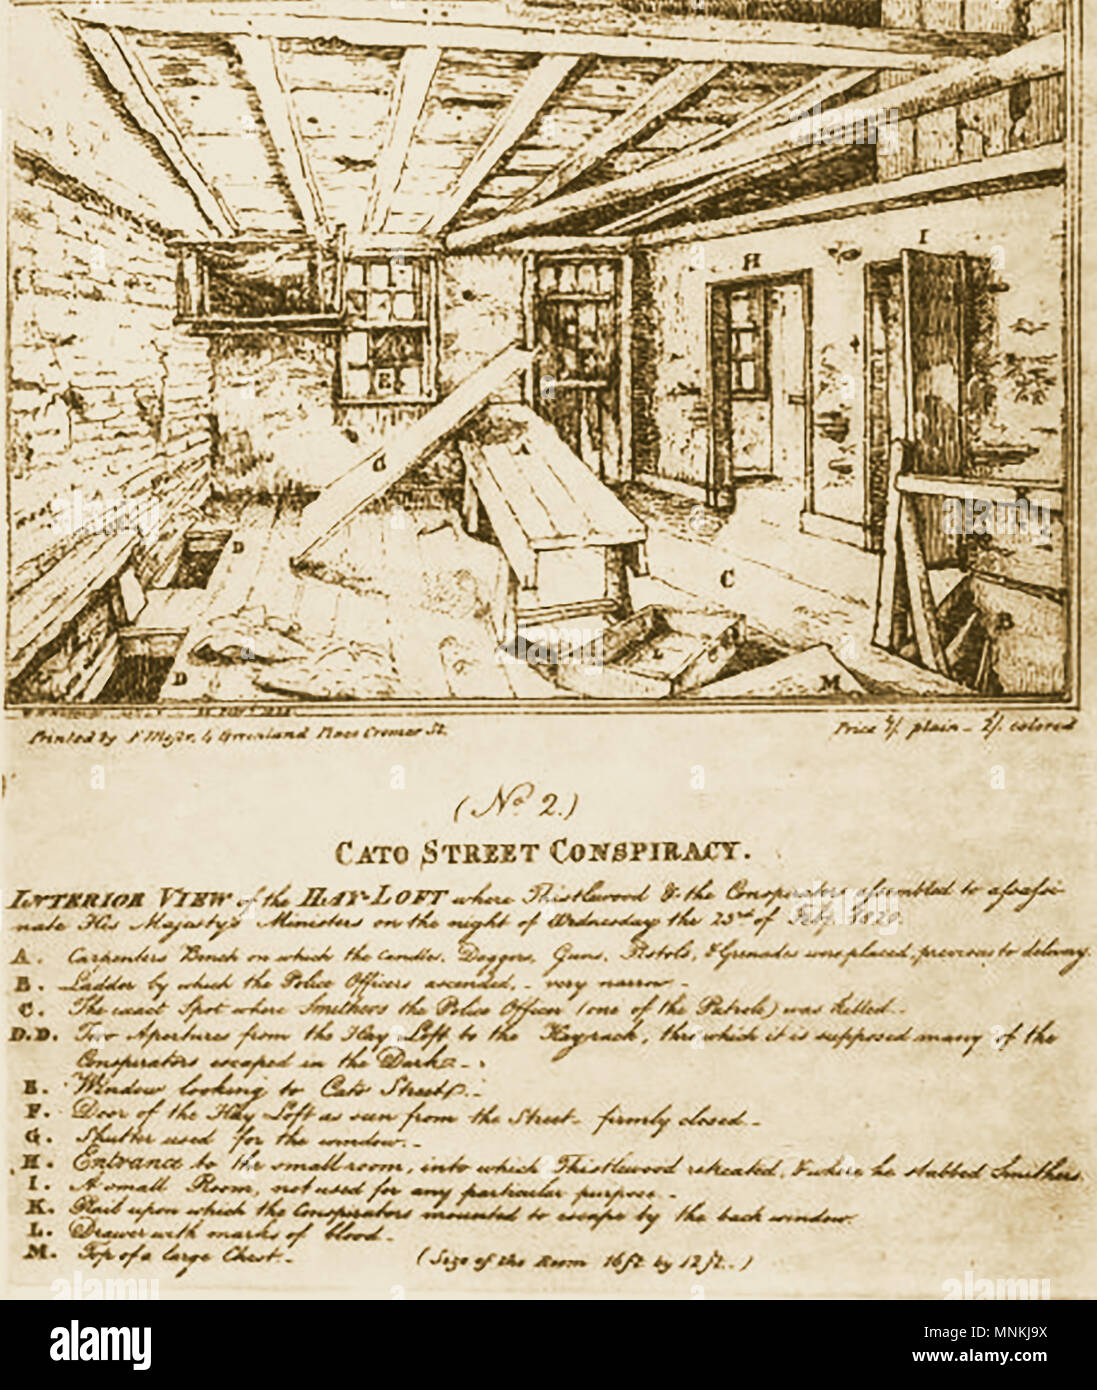 Cato street conspiracy / plot (A UK  attempt to murder all the British cabinet ministers and Prime Minister in 1820 - the Hayloft where meetings took place - Stock Image